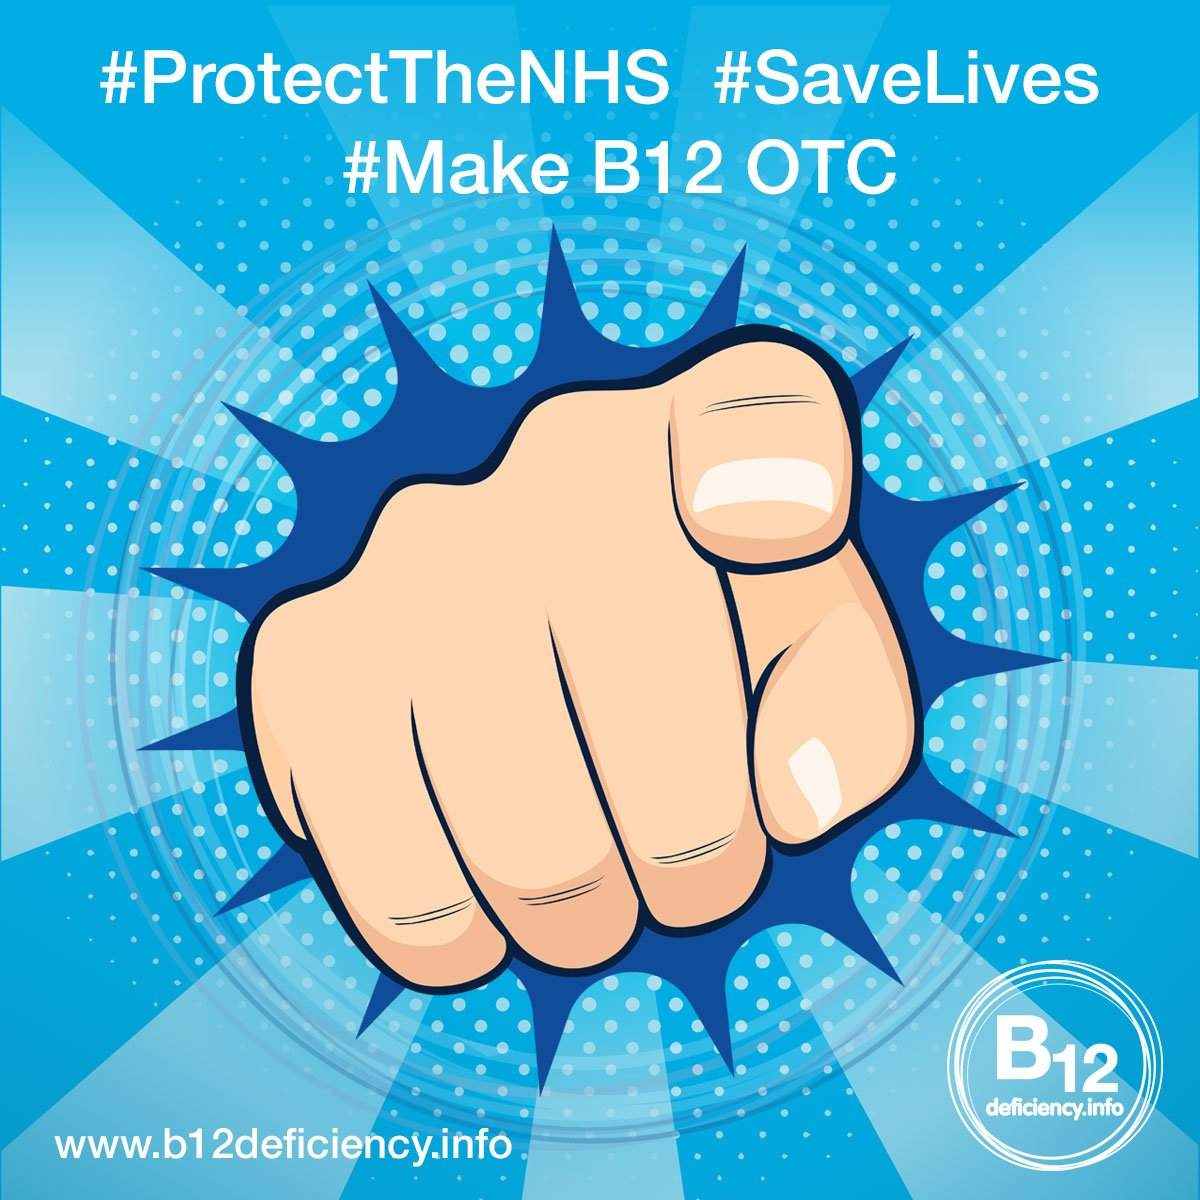 #ProtectTheNHS #SaveLives and #MakeB12OTC